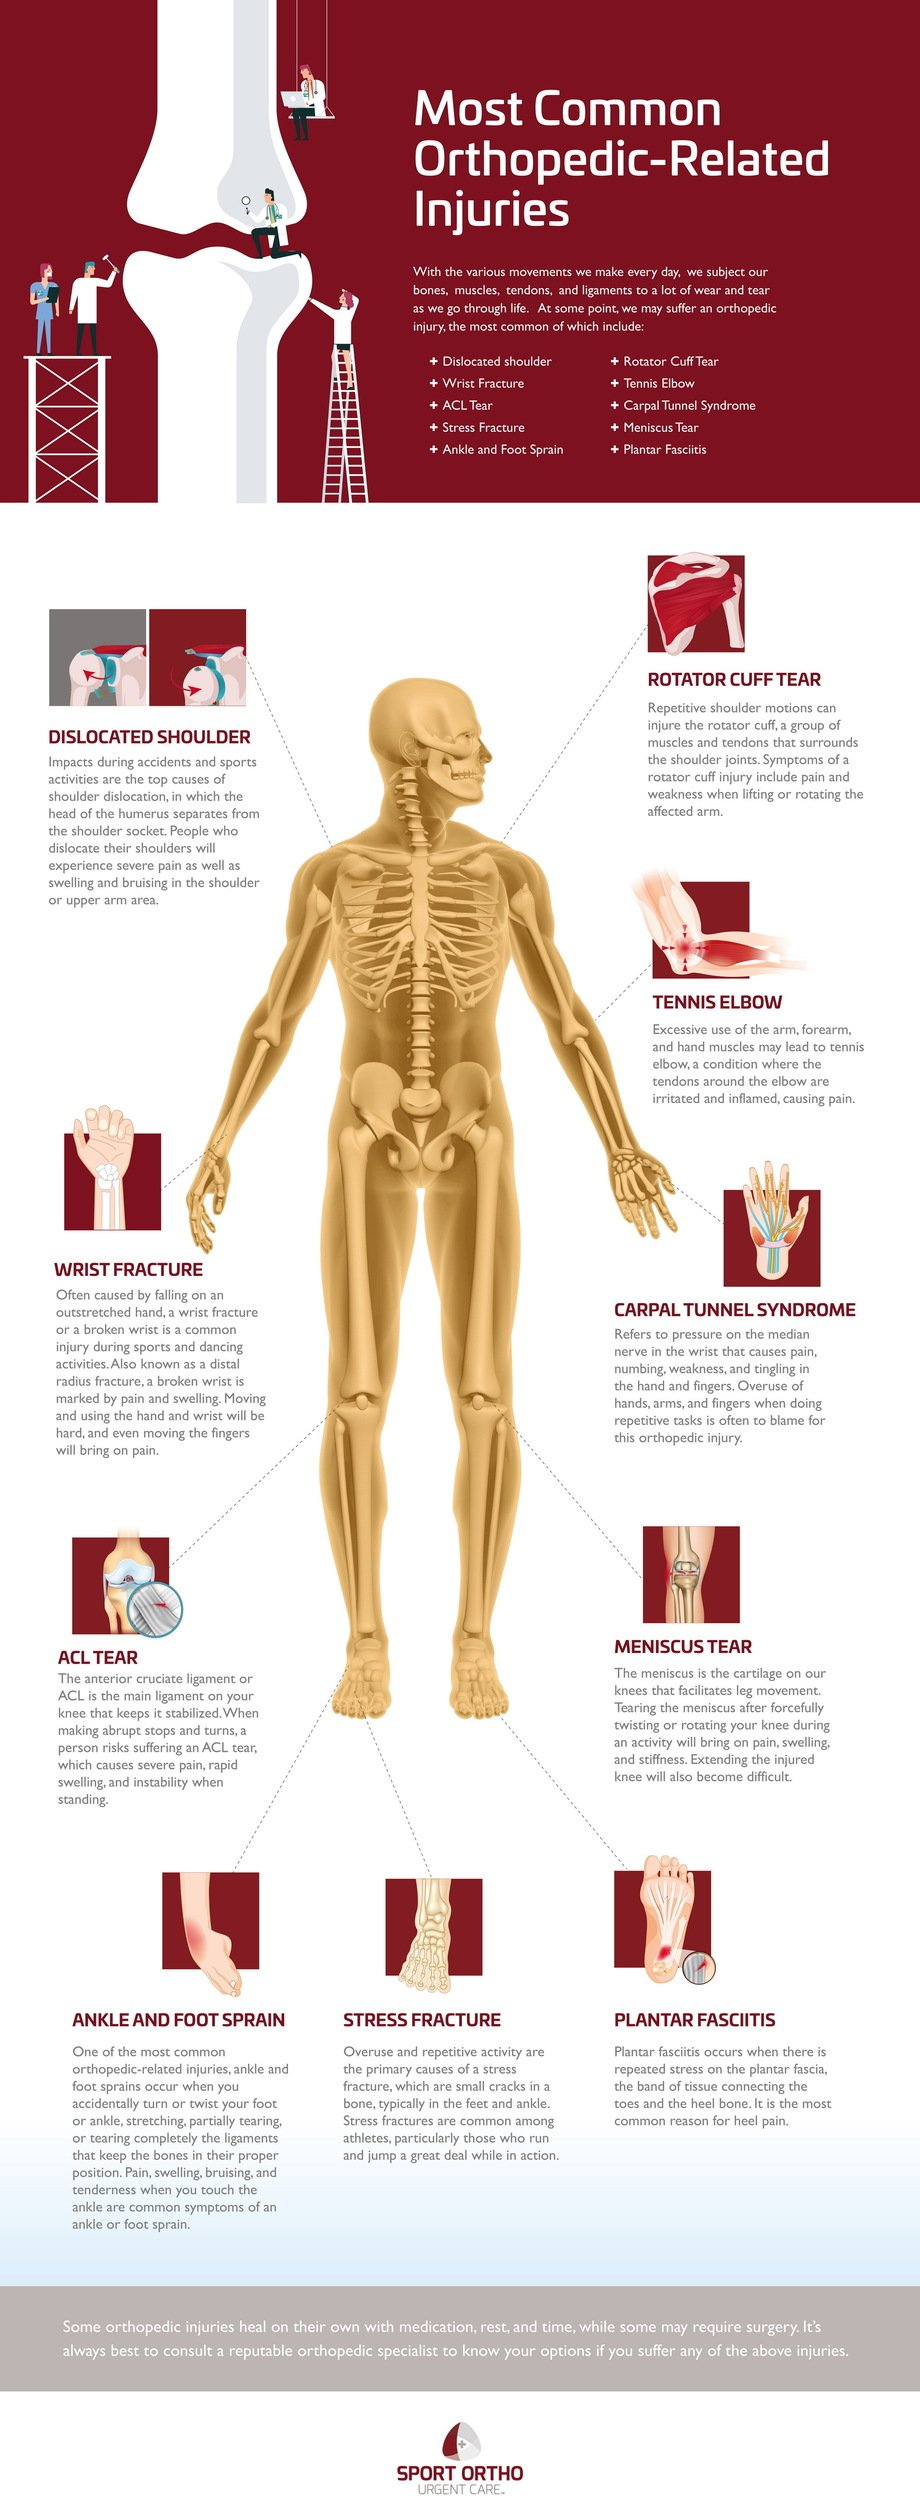 Most Common Orthopedic-Related Injuries